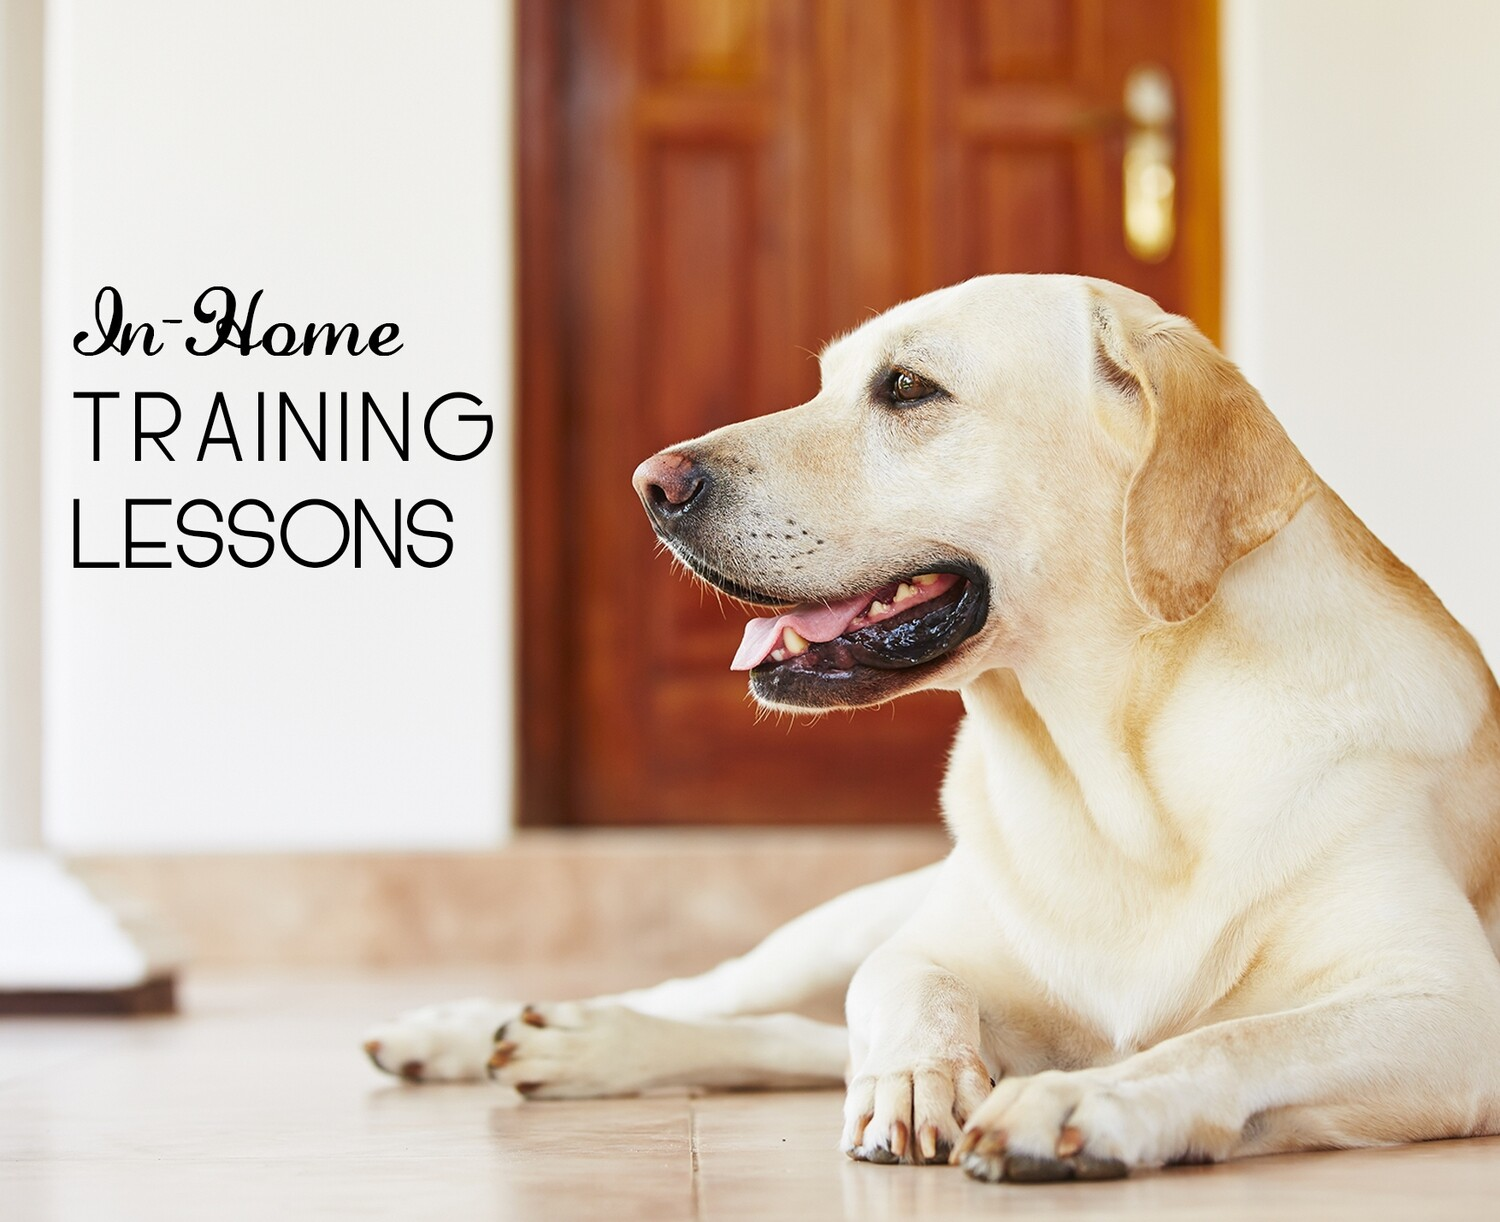 Training Lessons (In-Home)